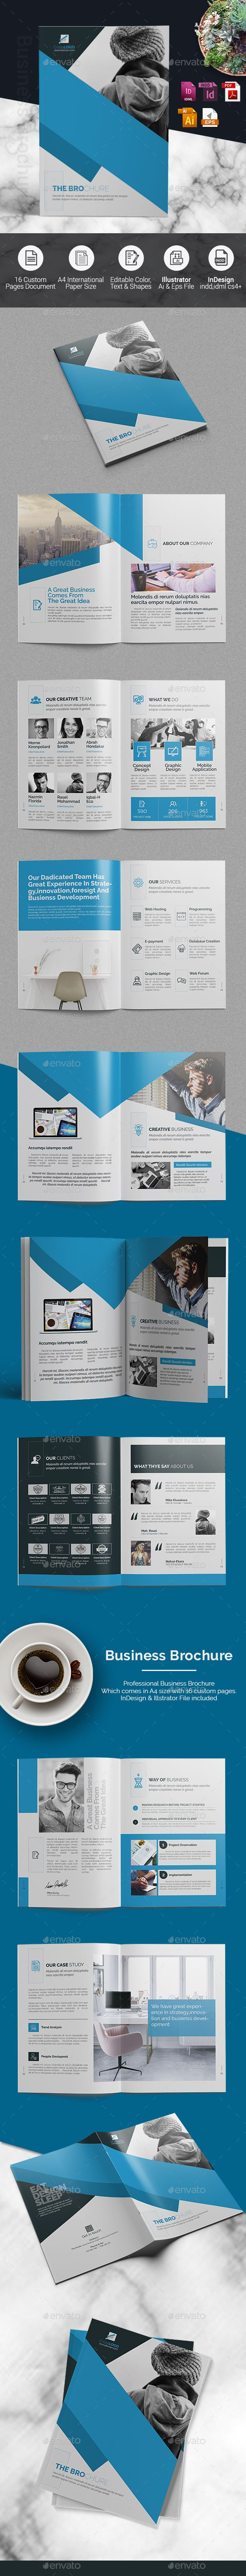 Corporate Brochure -InDesign Template